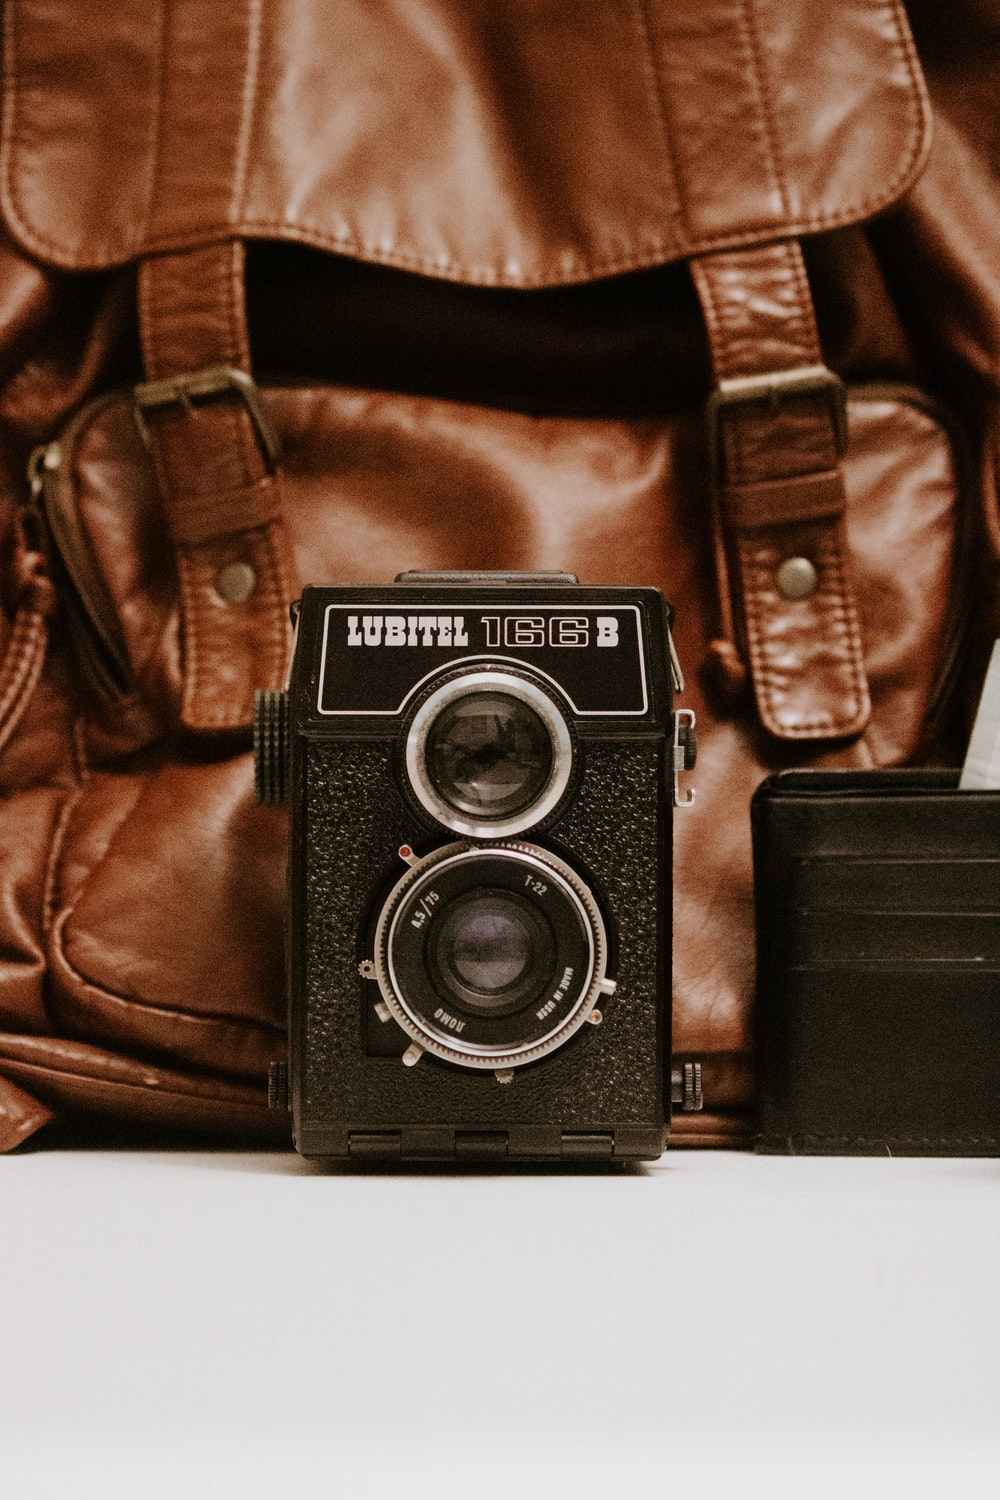 black Lubitel camera and brown leather bag